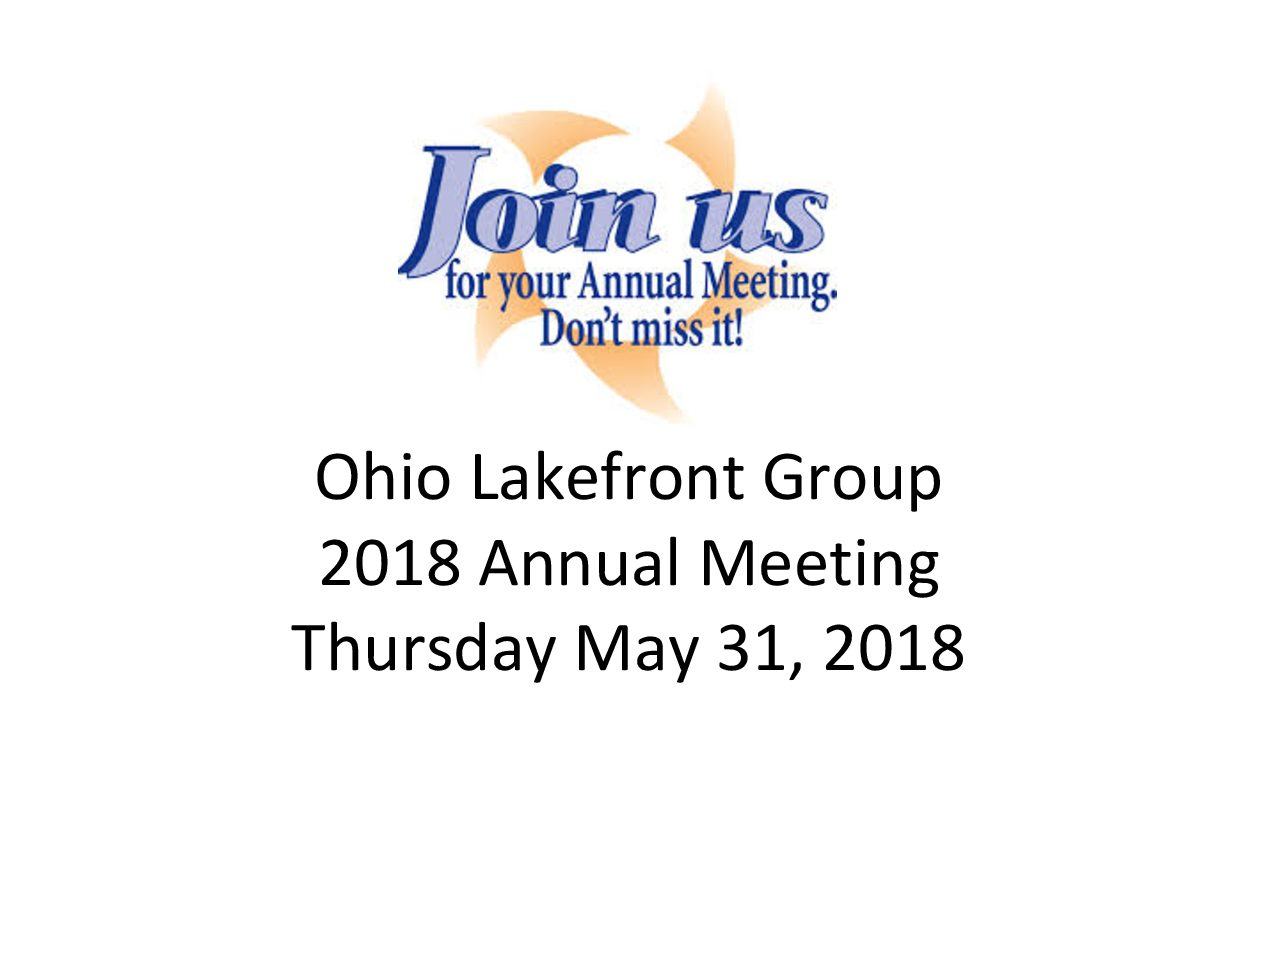 2018 Ohio Lakefront Group Annual Meeting